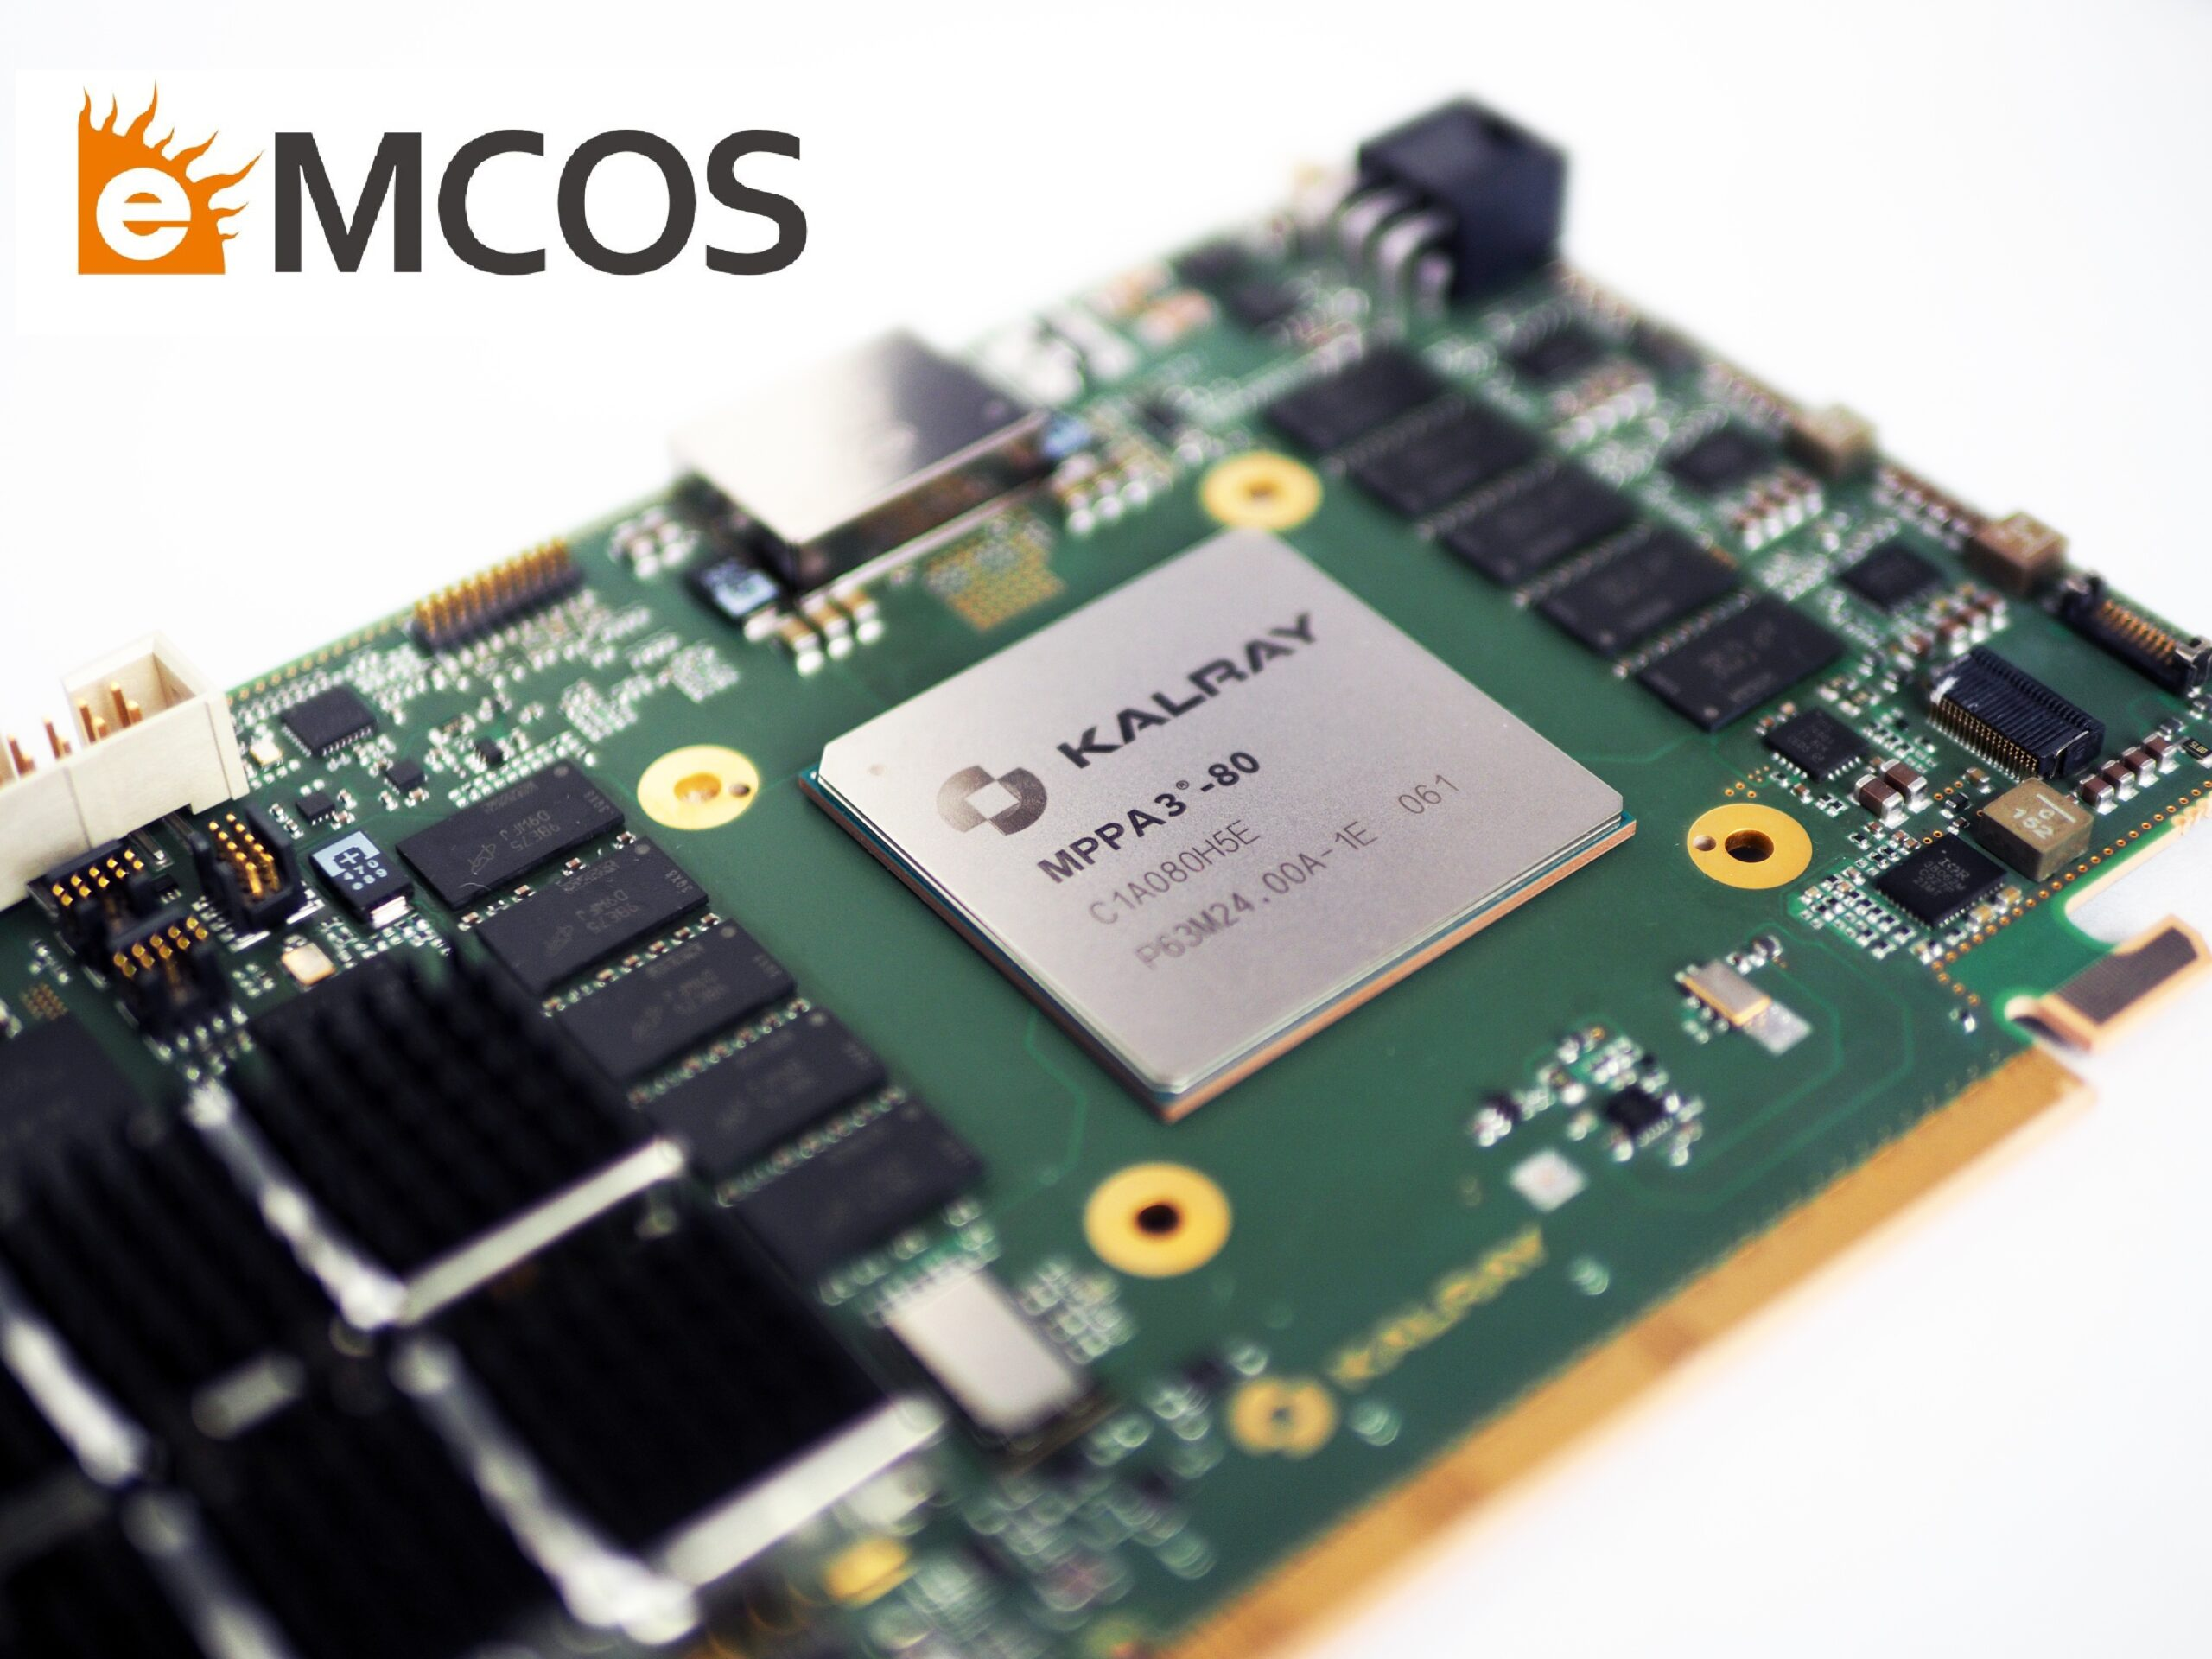 eMCOS® POSIX Commercial OS Supports Kalray's Coolidge™ Intelligent Processor for Mixed-Criticality Systems[1]